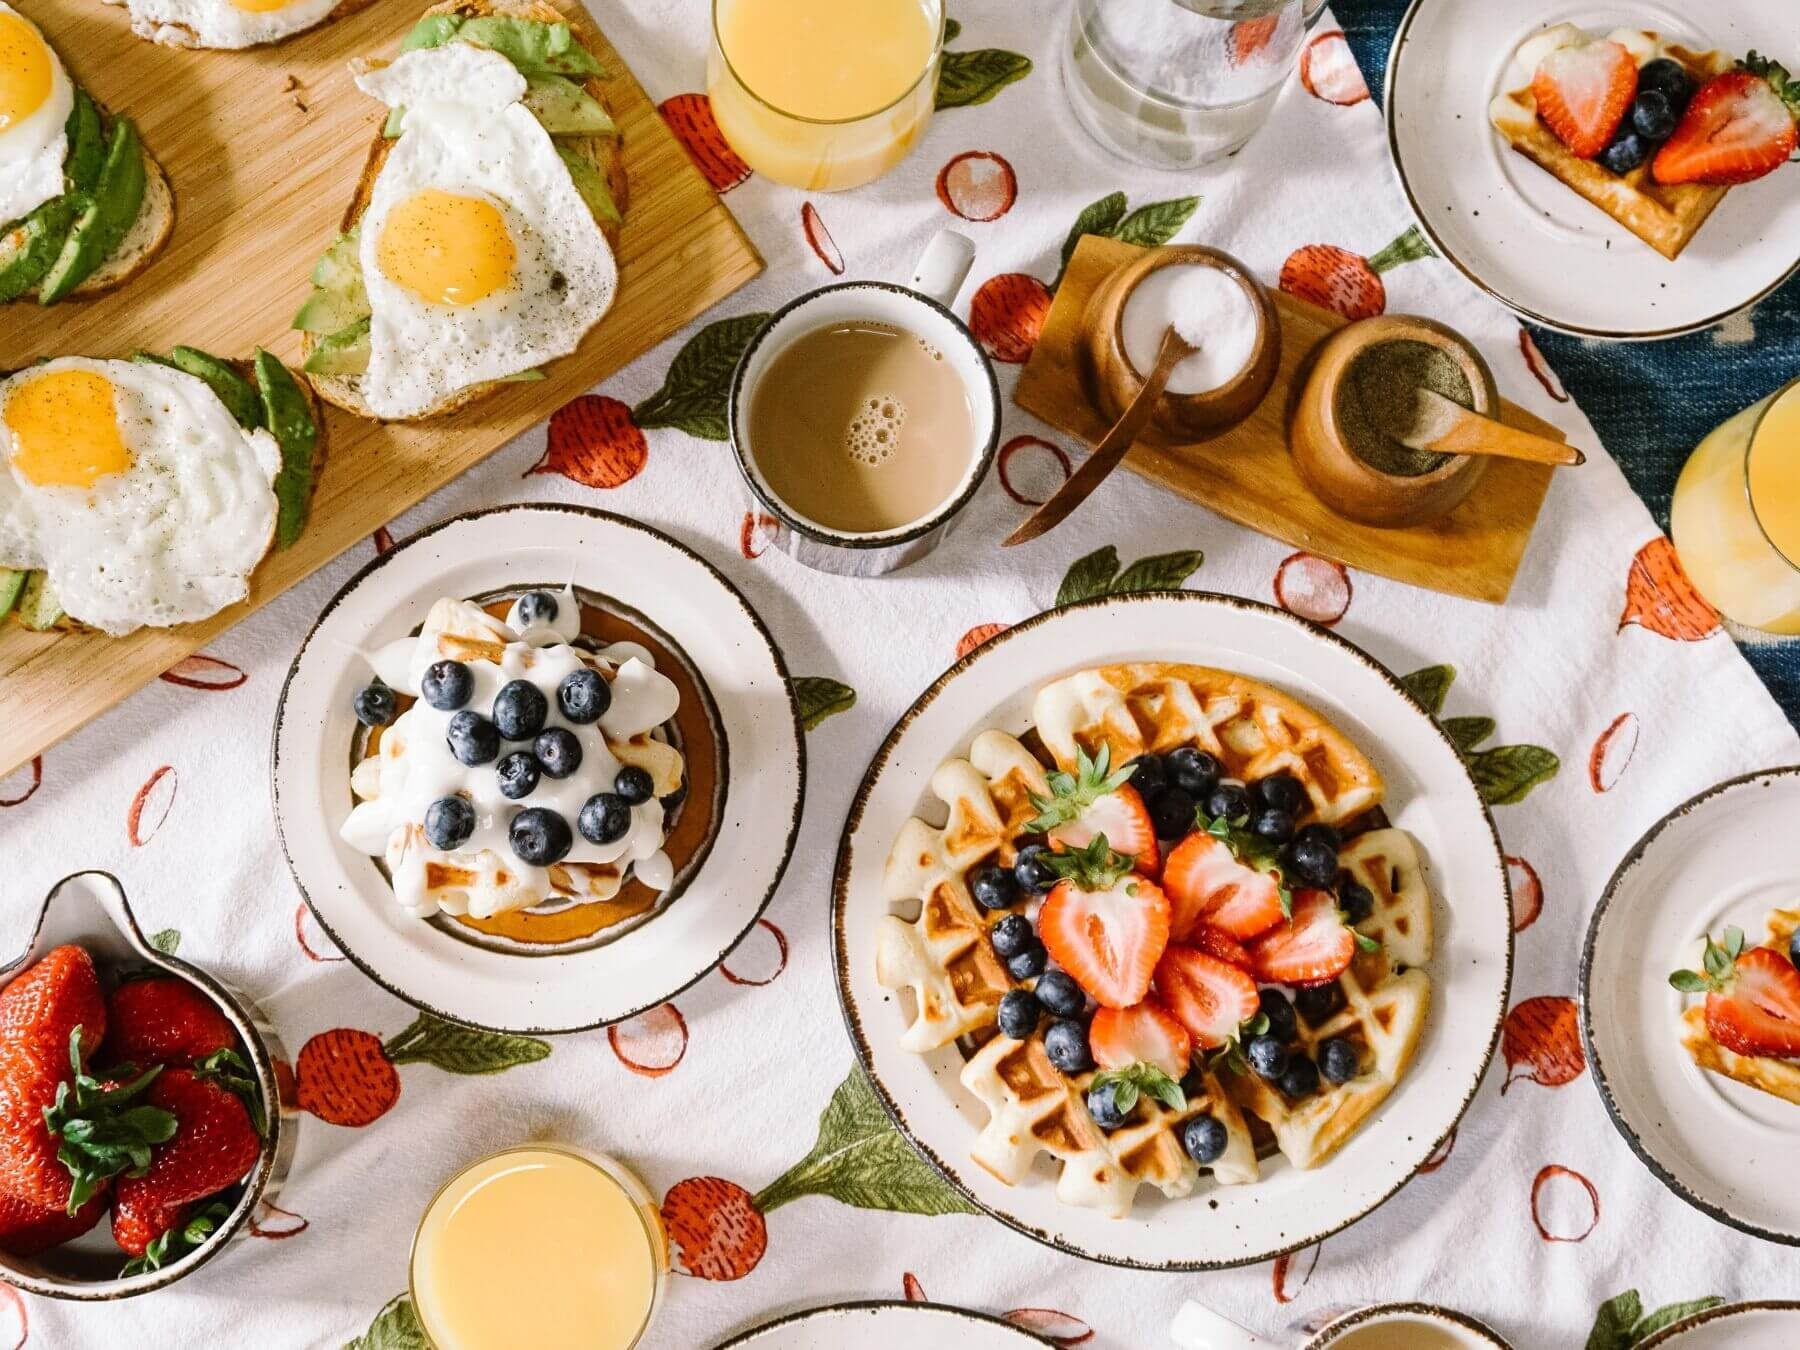 brunch foods on a table